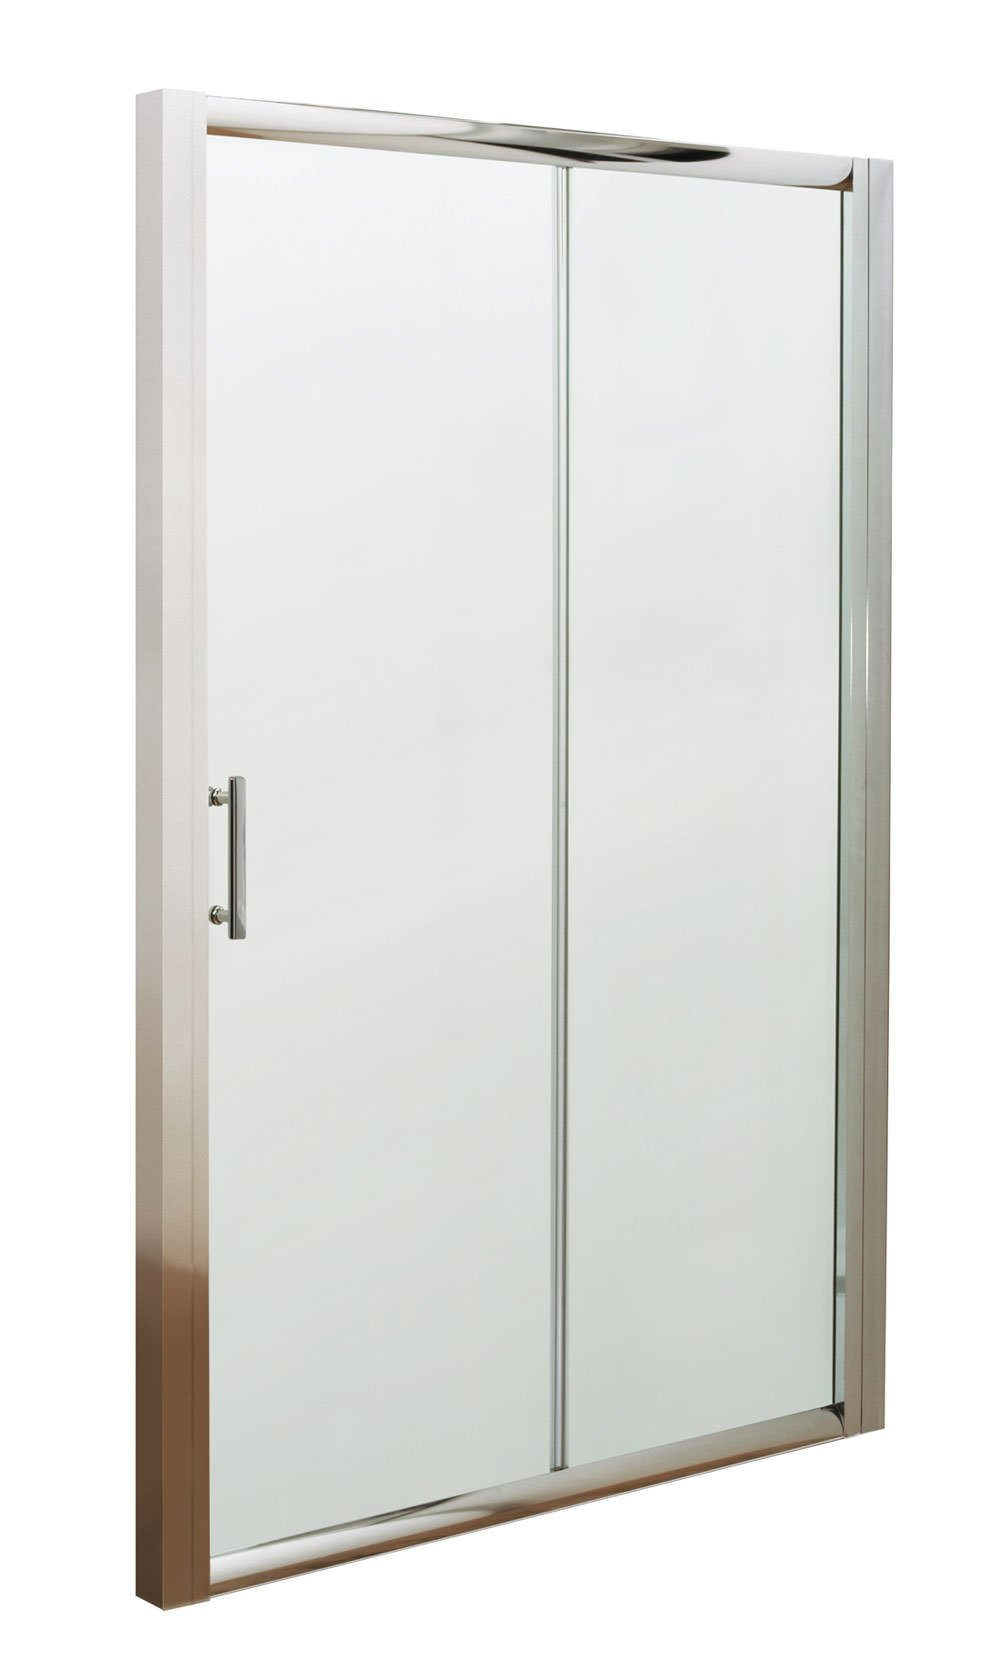 Sliding door dimensions for 1500mm french doors